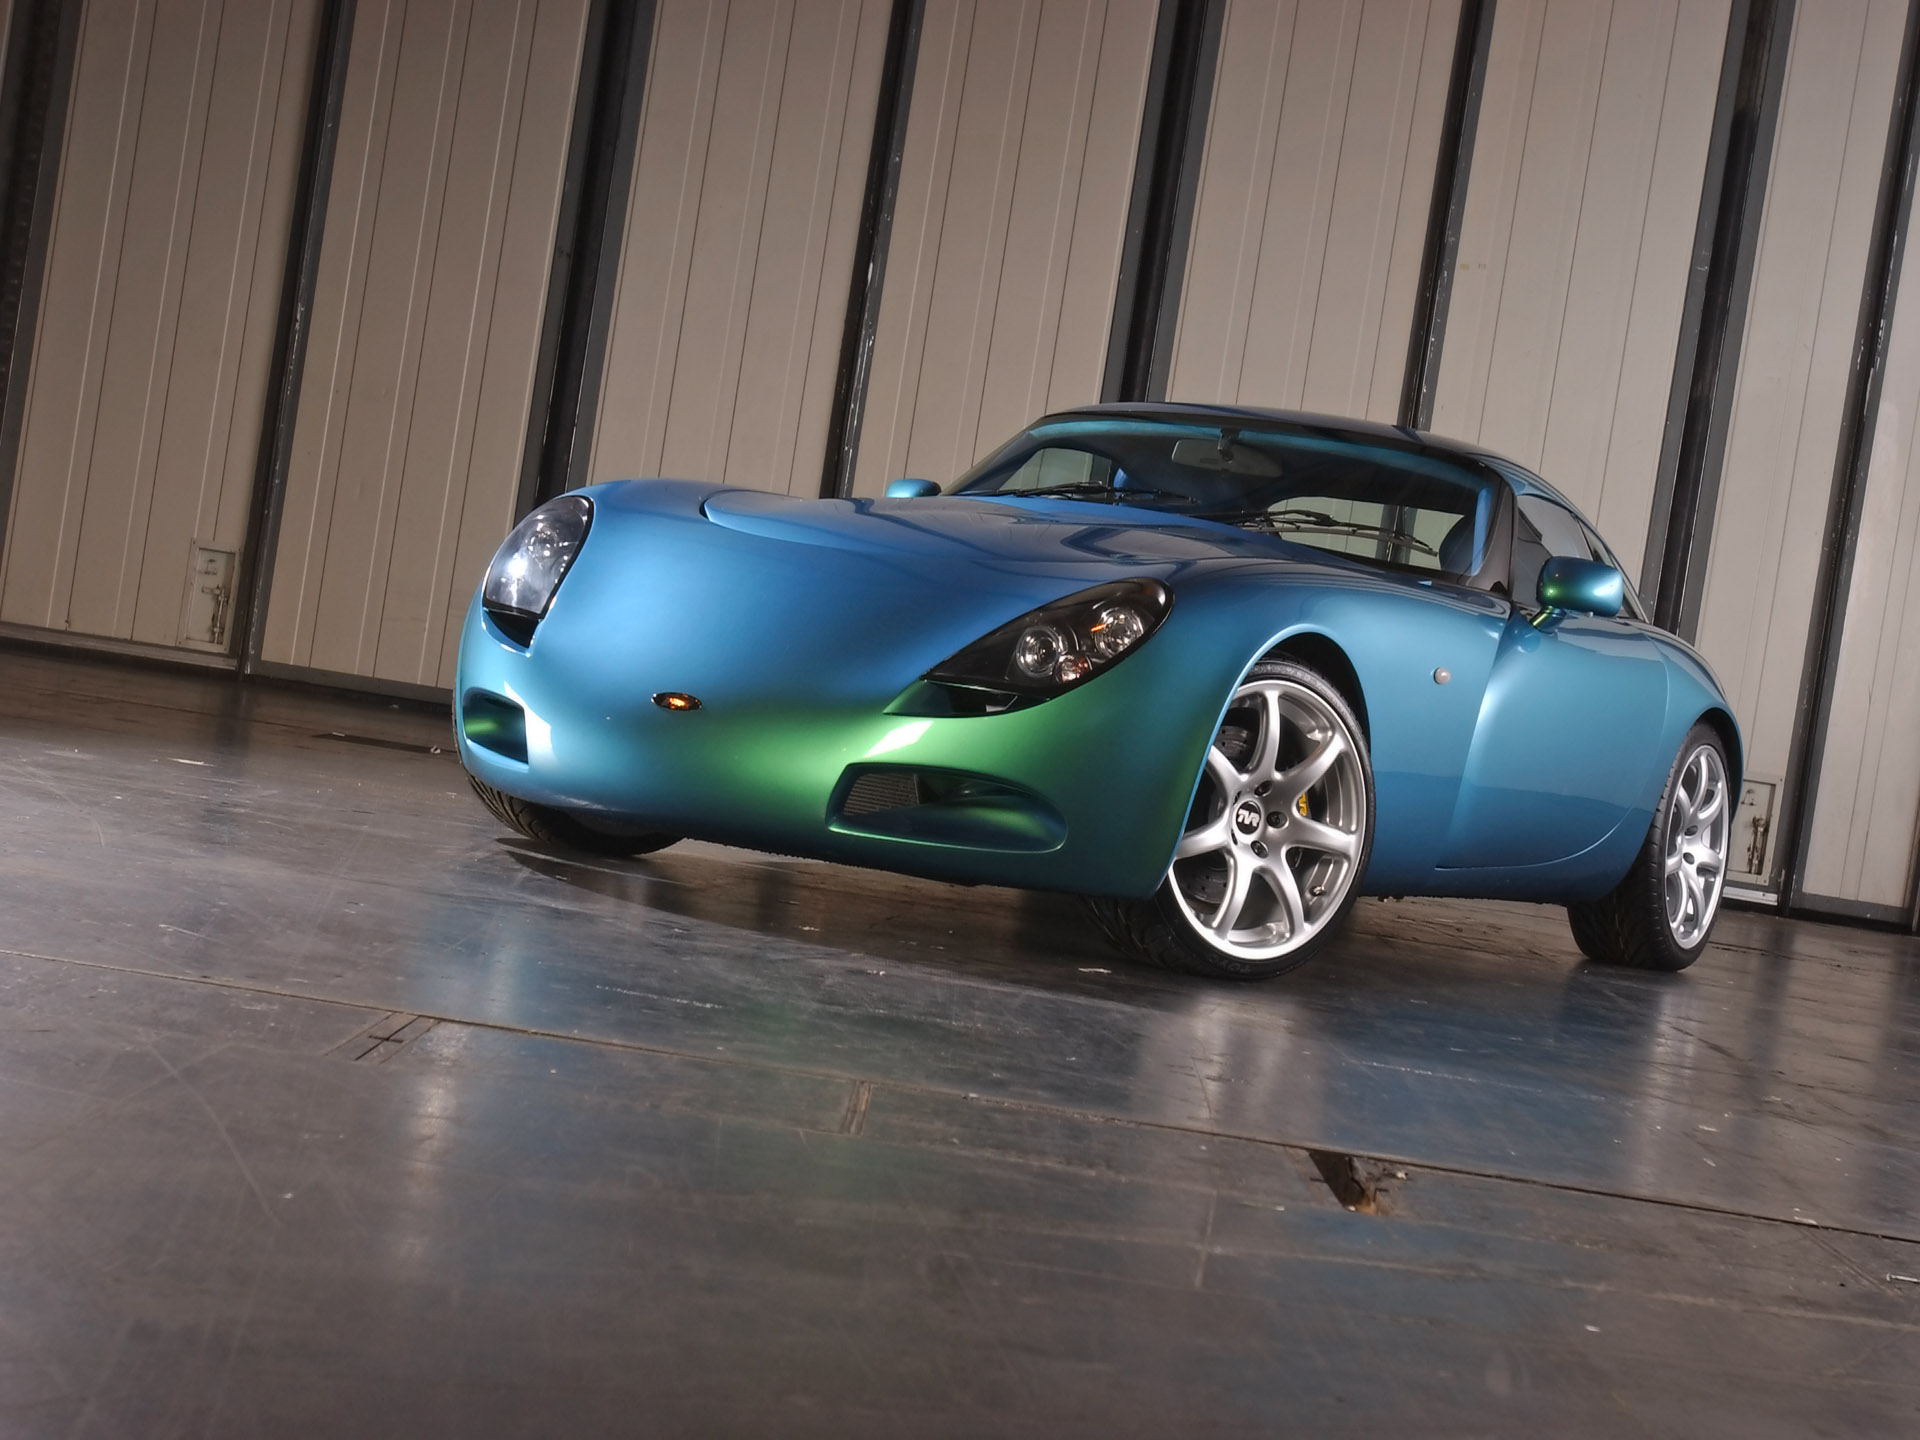 Tvr t350t photo - 2